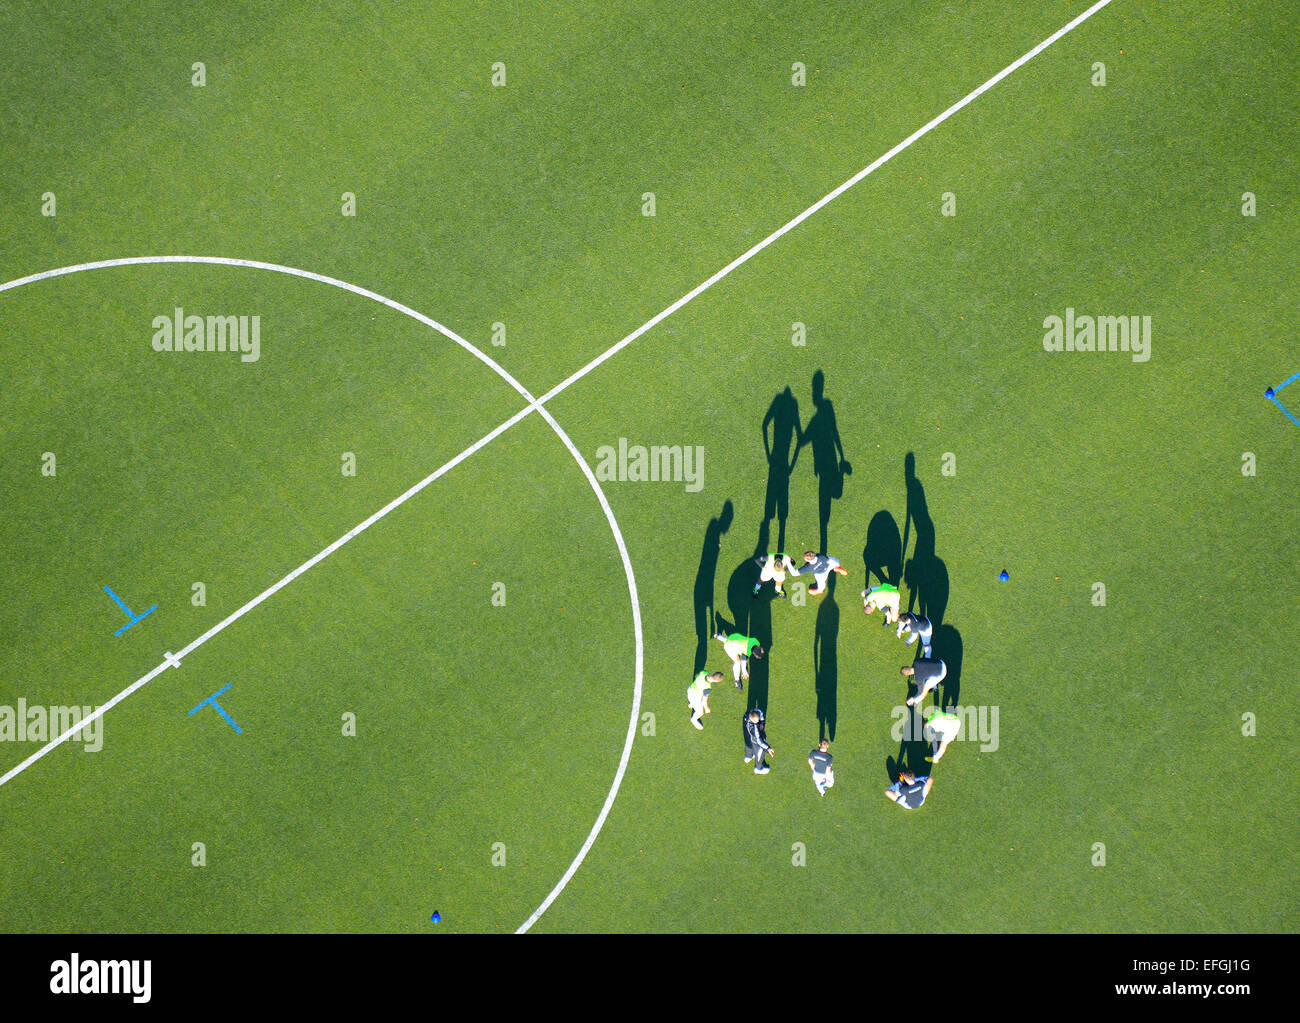 Football team, football players doing warm-up exercises, aerial view, Billtal Stadium, Hamburg, Germany - Stock Image